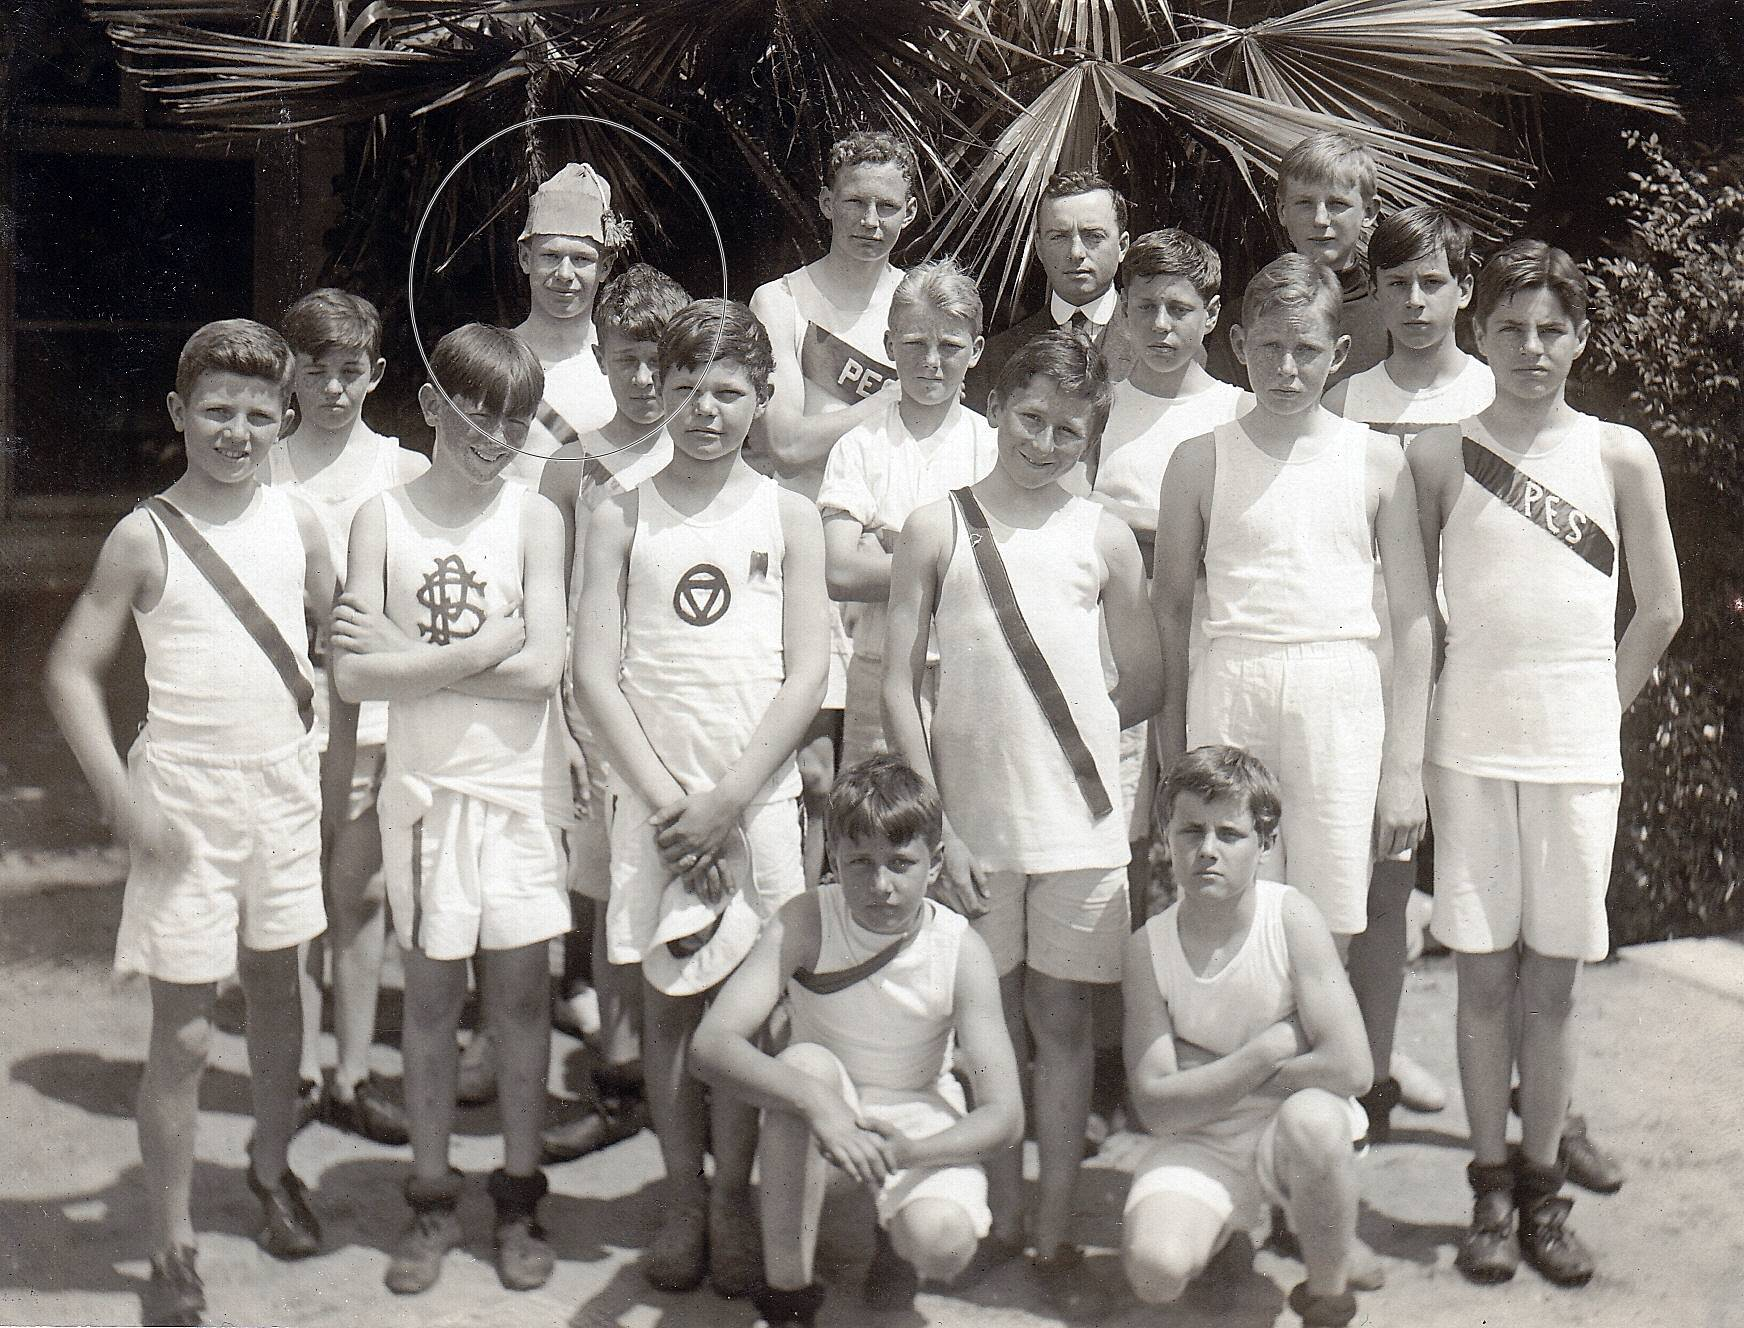 Charley's Track Team [Age 15]